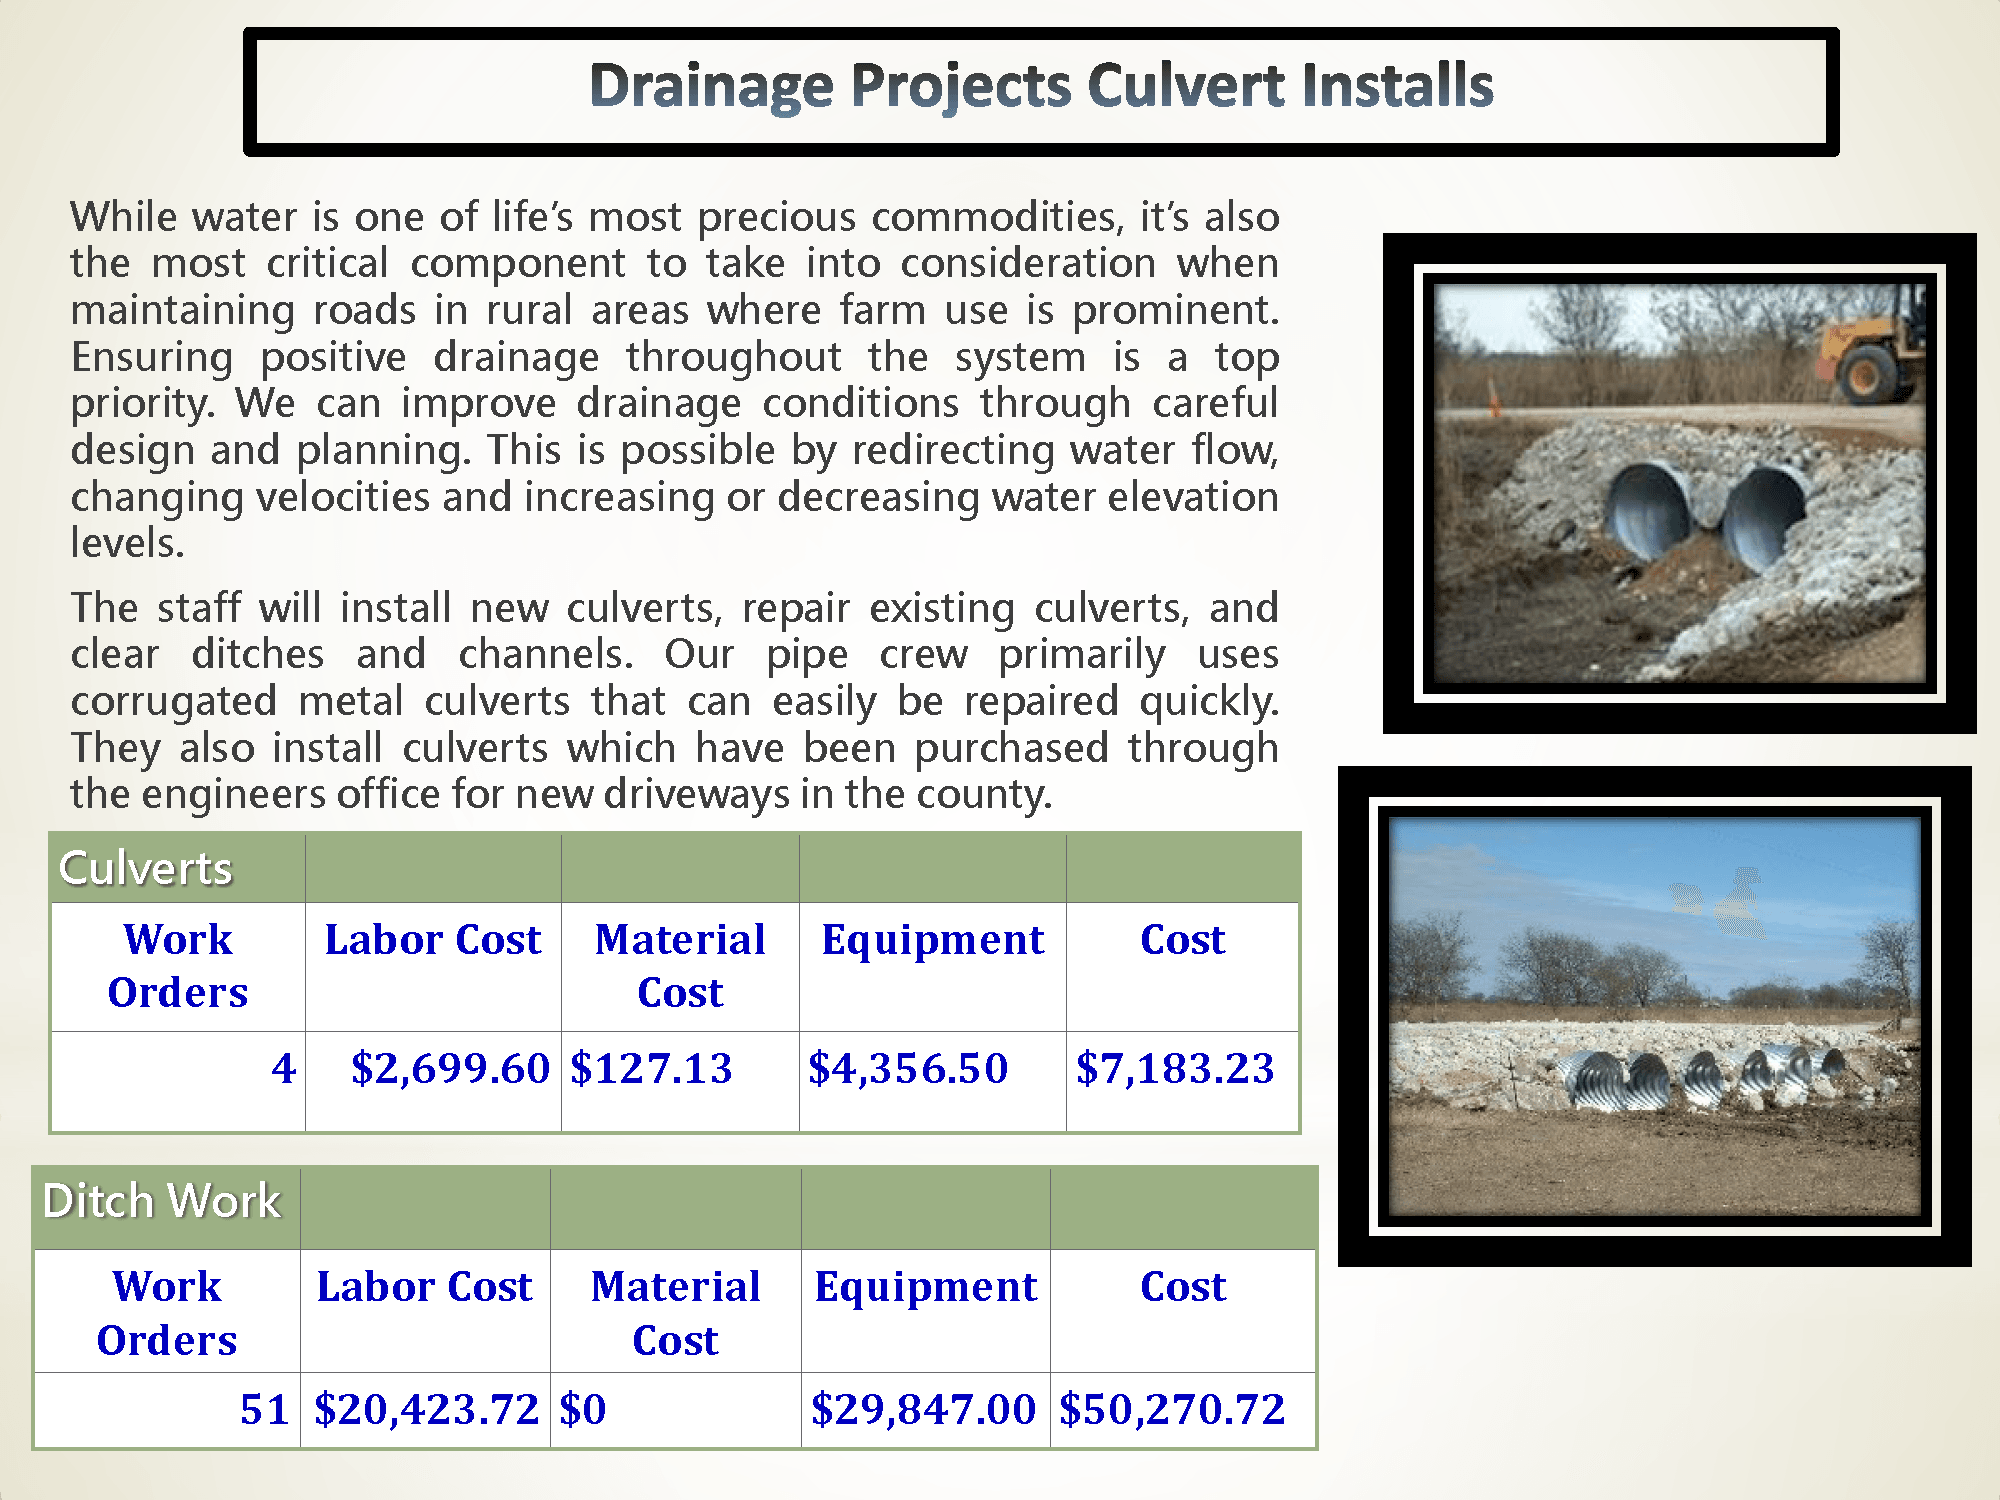 Drainage Projects and Culver Installs and Pictures